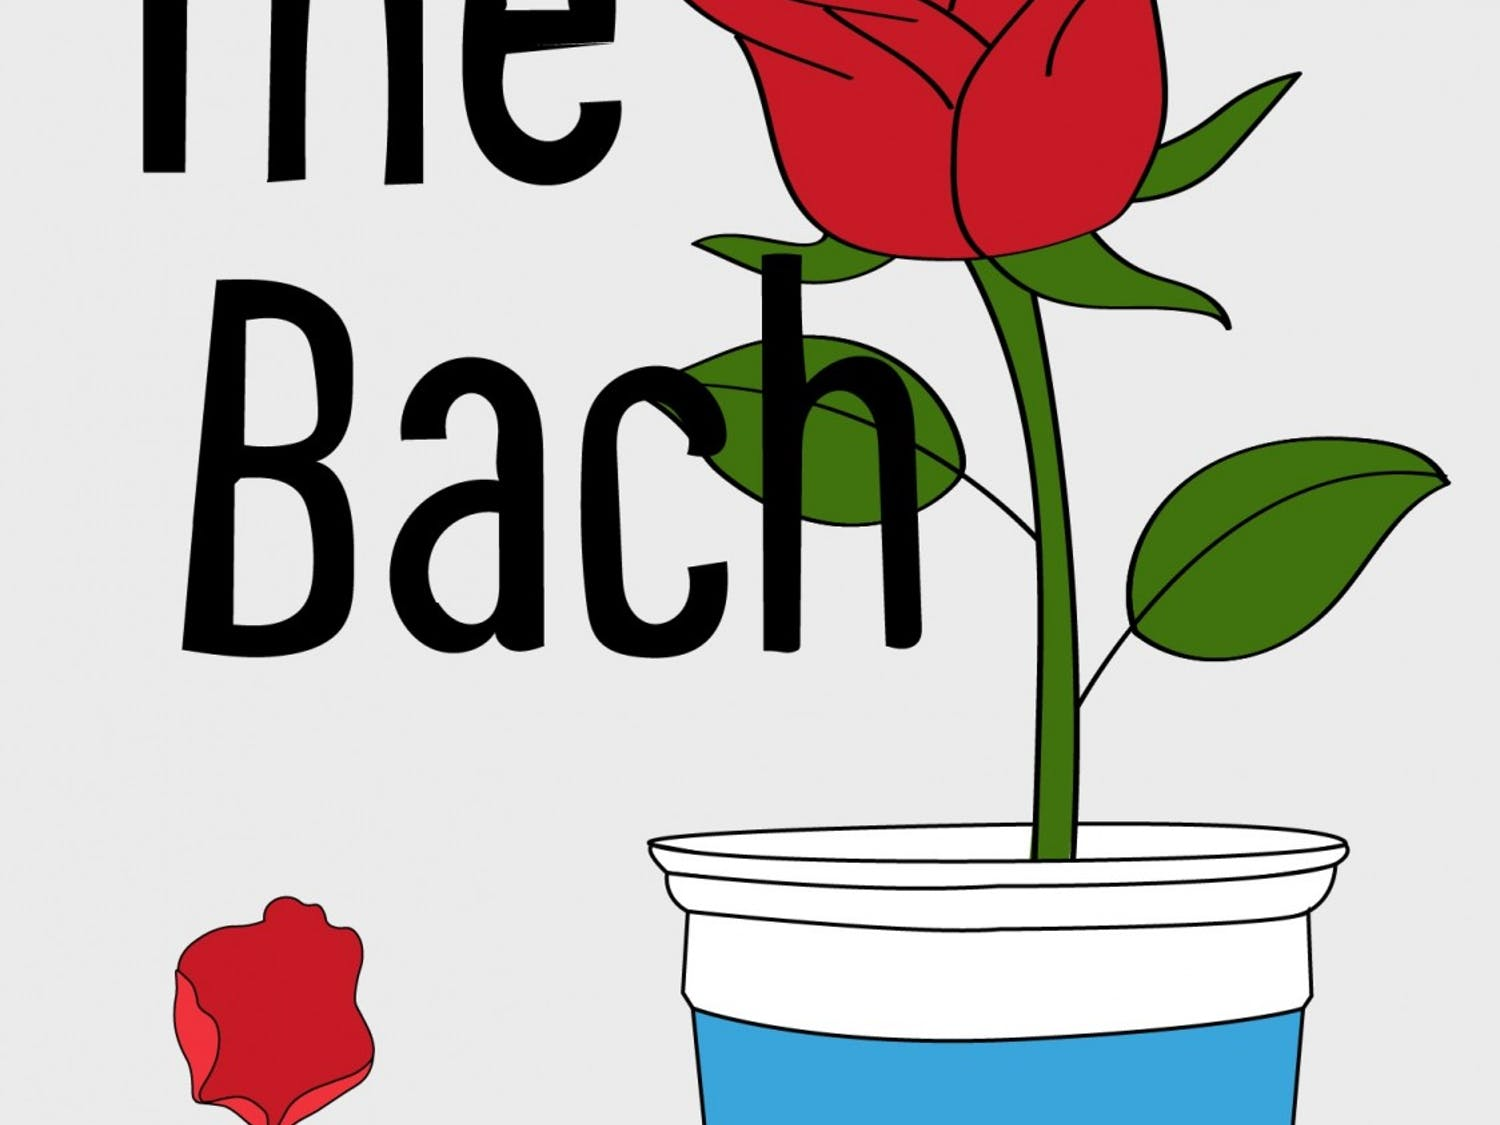 """Student TV's newest show """"The Bach"""" is a UNC spin on ABC's hit shows """"The Bachelor"""" and """"The Bachelorette."""" Graphic courtesy of Elinor Kelly and Kendal Orrantia."""